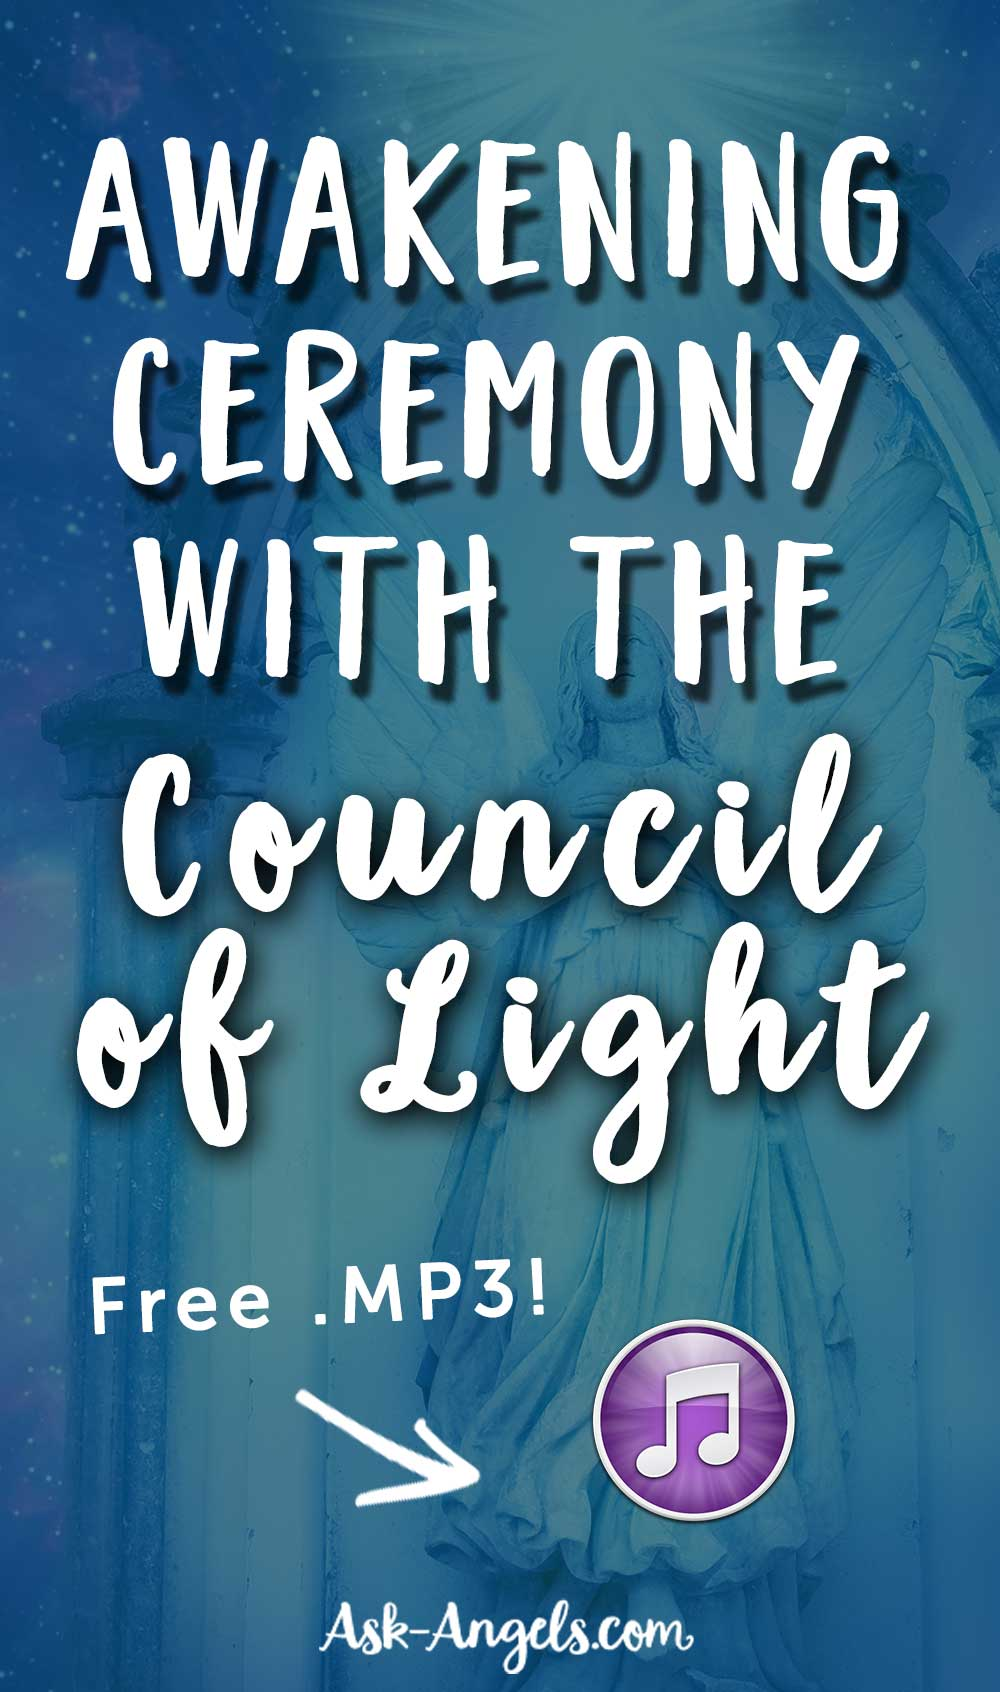 Awakening Ceremony with the Council of Light